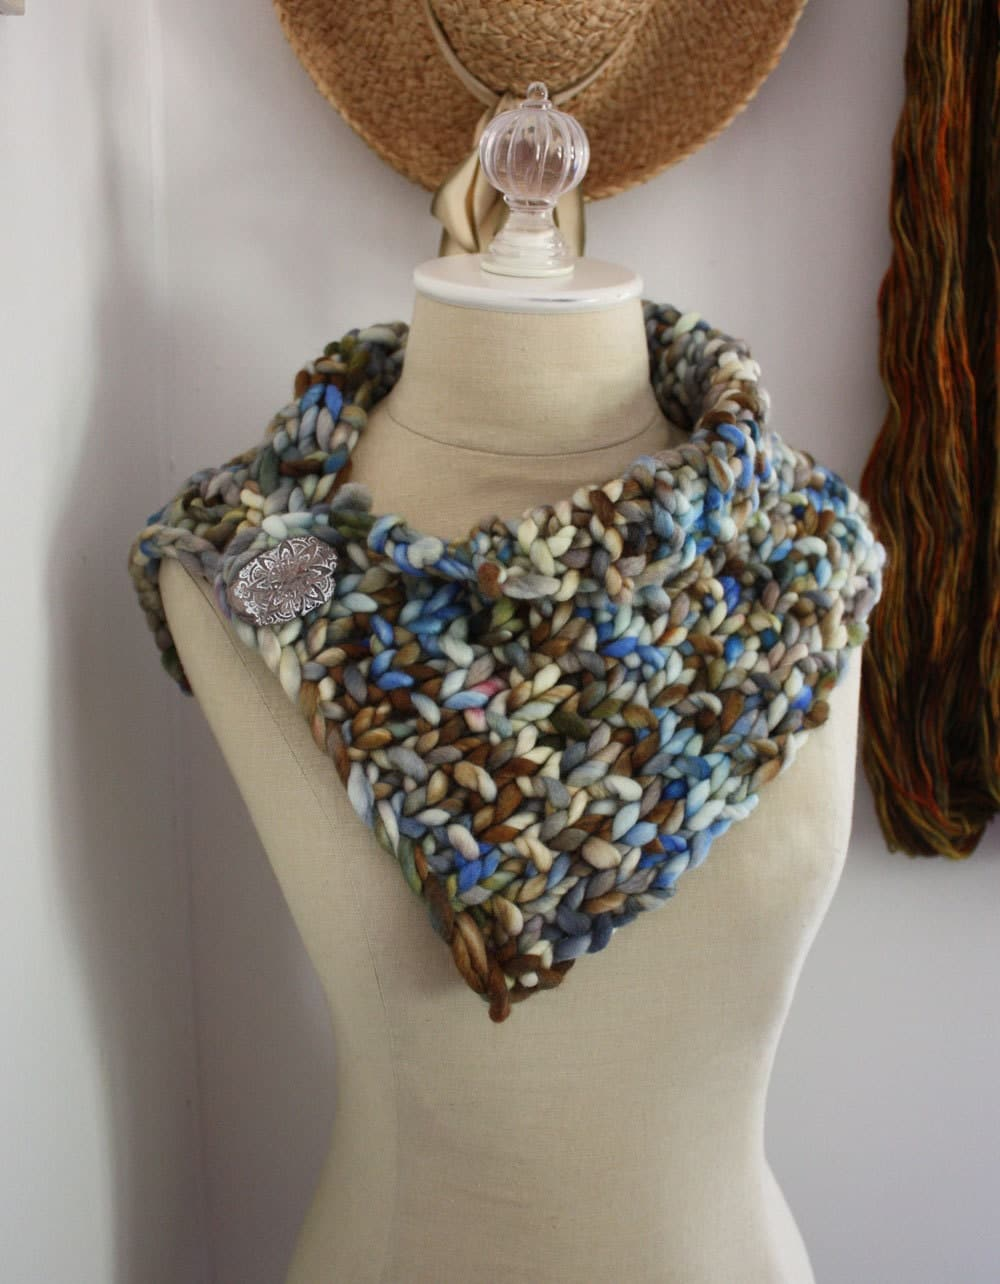 Knitting Pattern / Super Chunky Bulky Cowl Neckwarmer